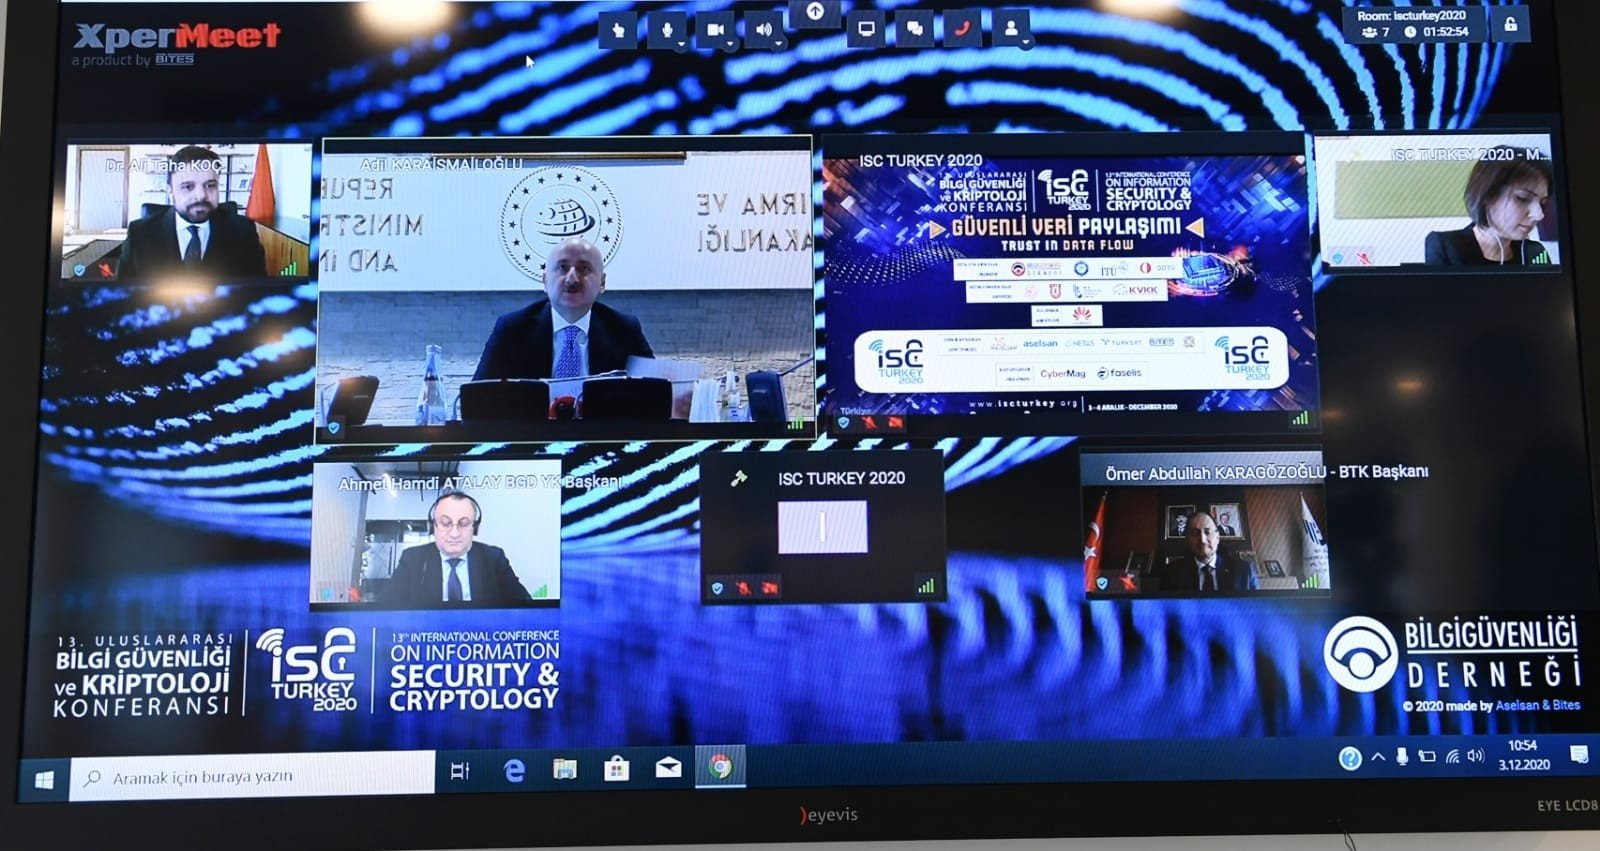 Transport and Infrastructure Minister Adil Karaismailoğlu speaks during the 13th International Conference on Information Security and Cryptology organized virtually, Ankara, Turkey, Dec. 3, 2020. (IHA Photo)